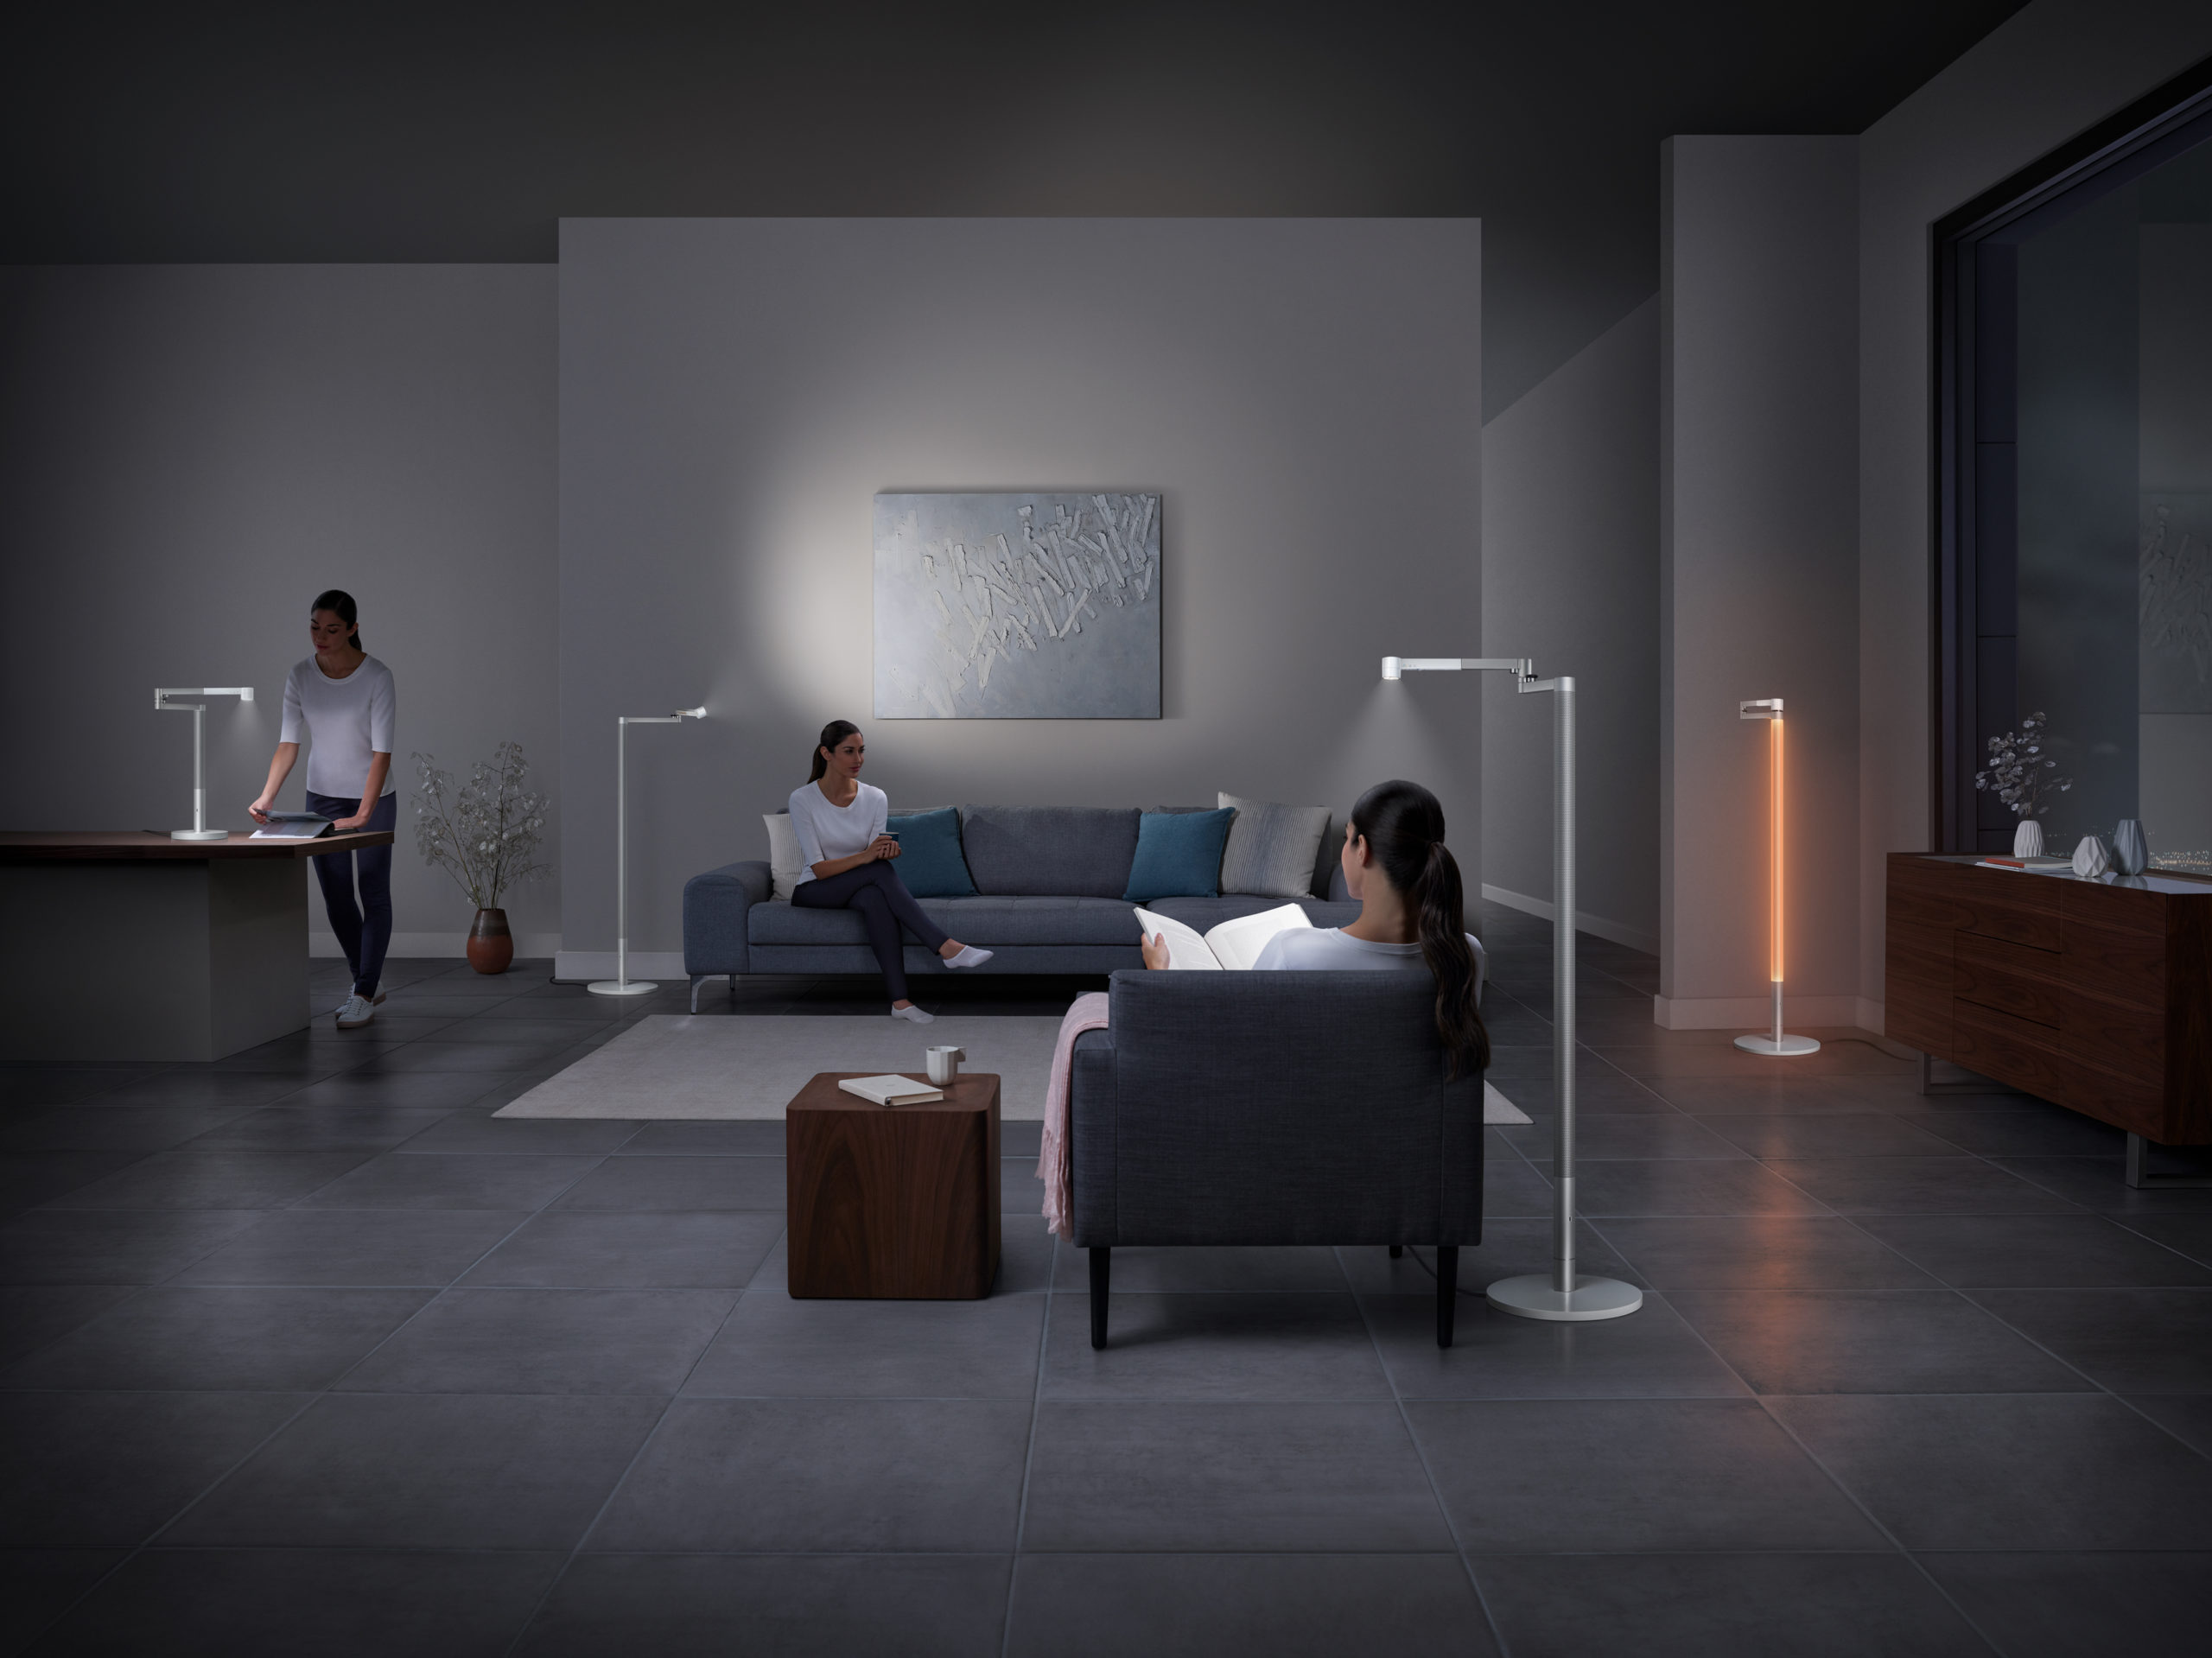 Dyson Lightcycle Morph – perfektes Licht für jede Situation